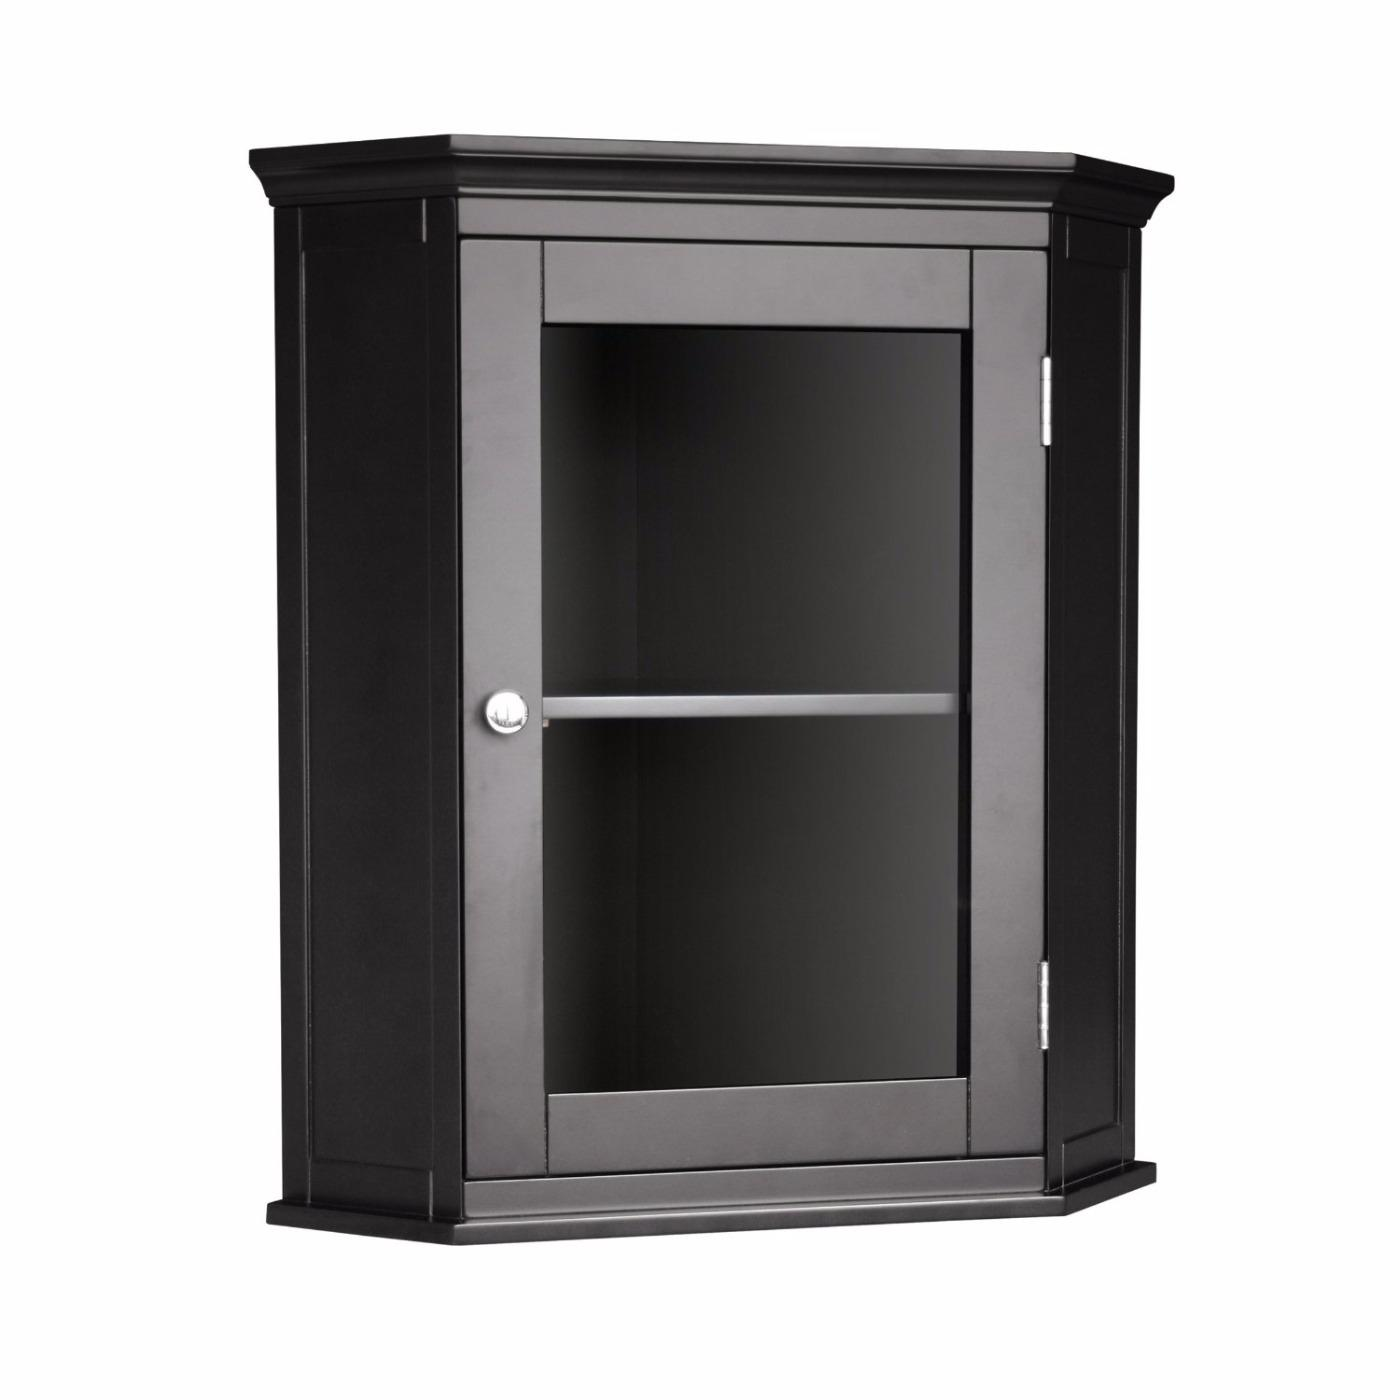 Cheap cabinet doors multiple door medicine cabinets in for Cheap kitchen wall cabinets